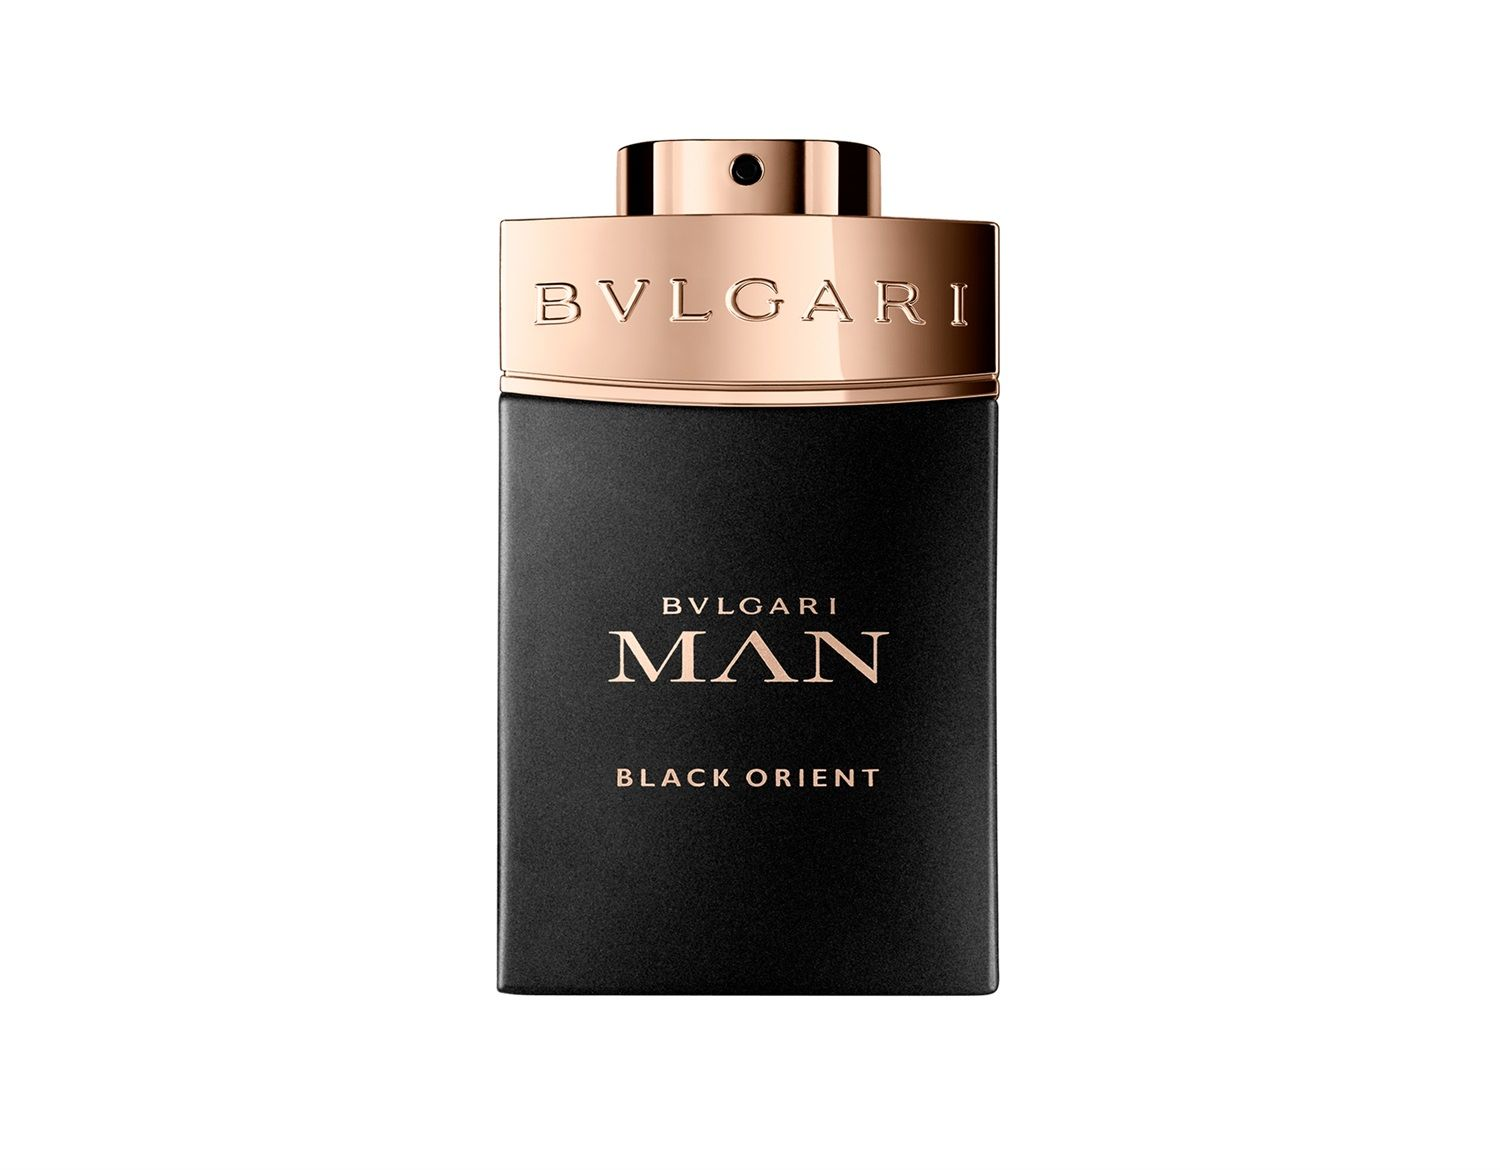 Bulgari Man Black Orient 100ml